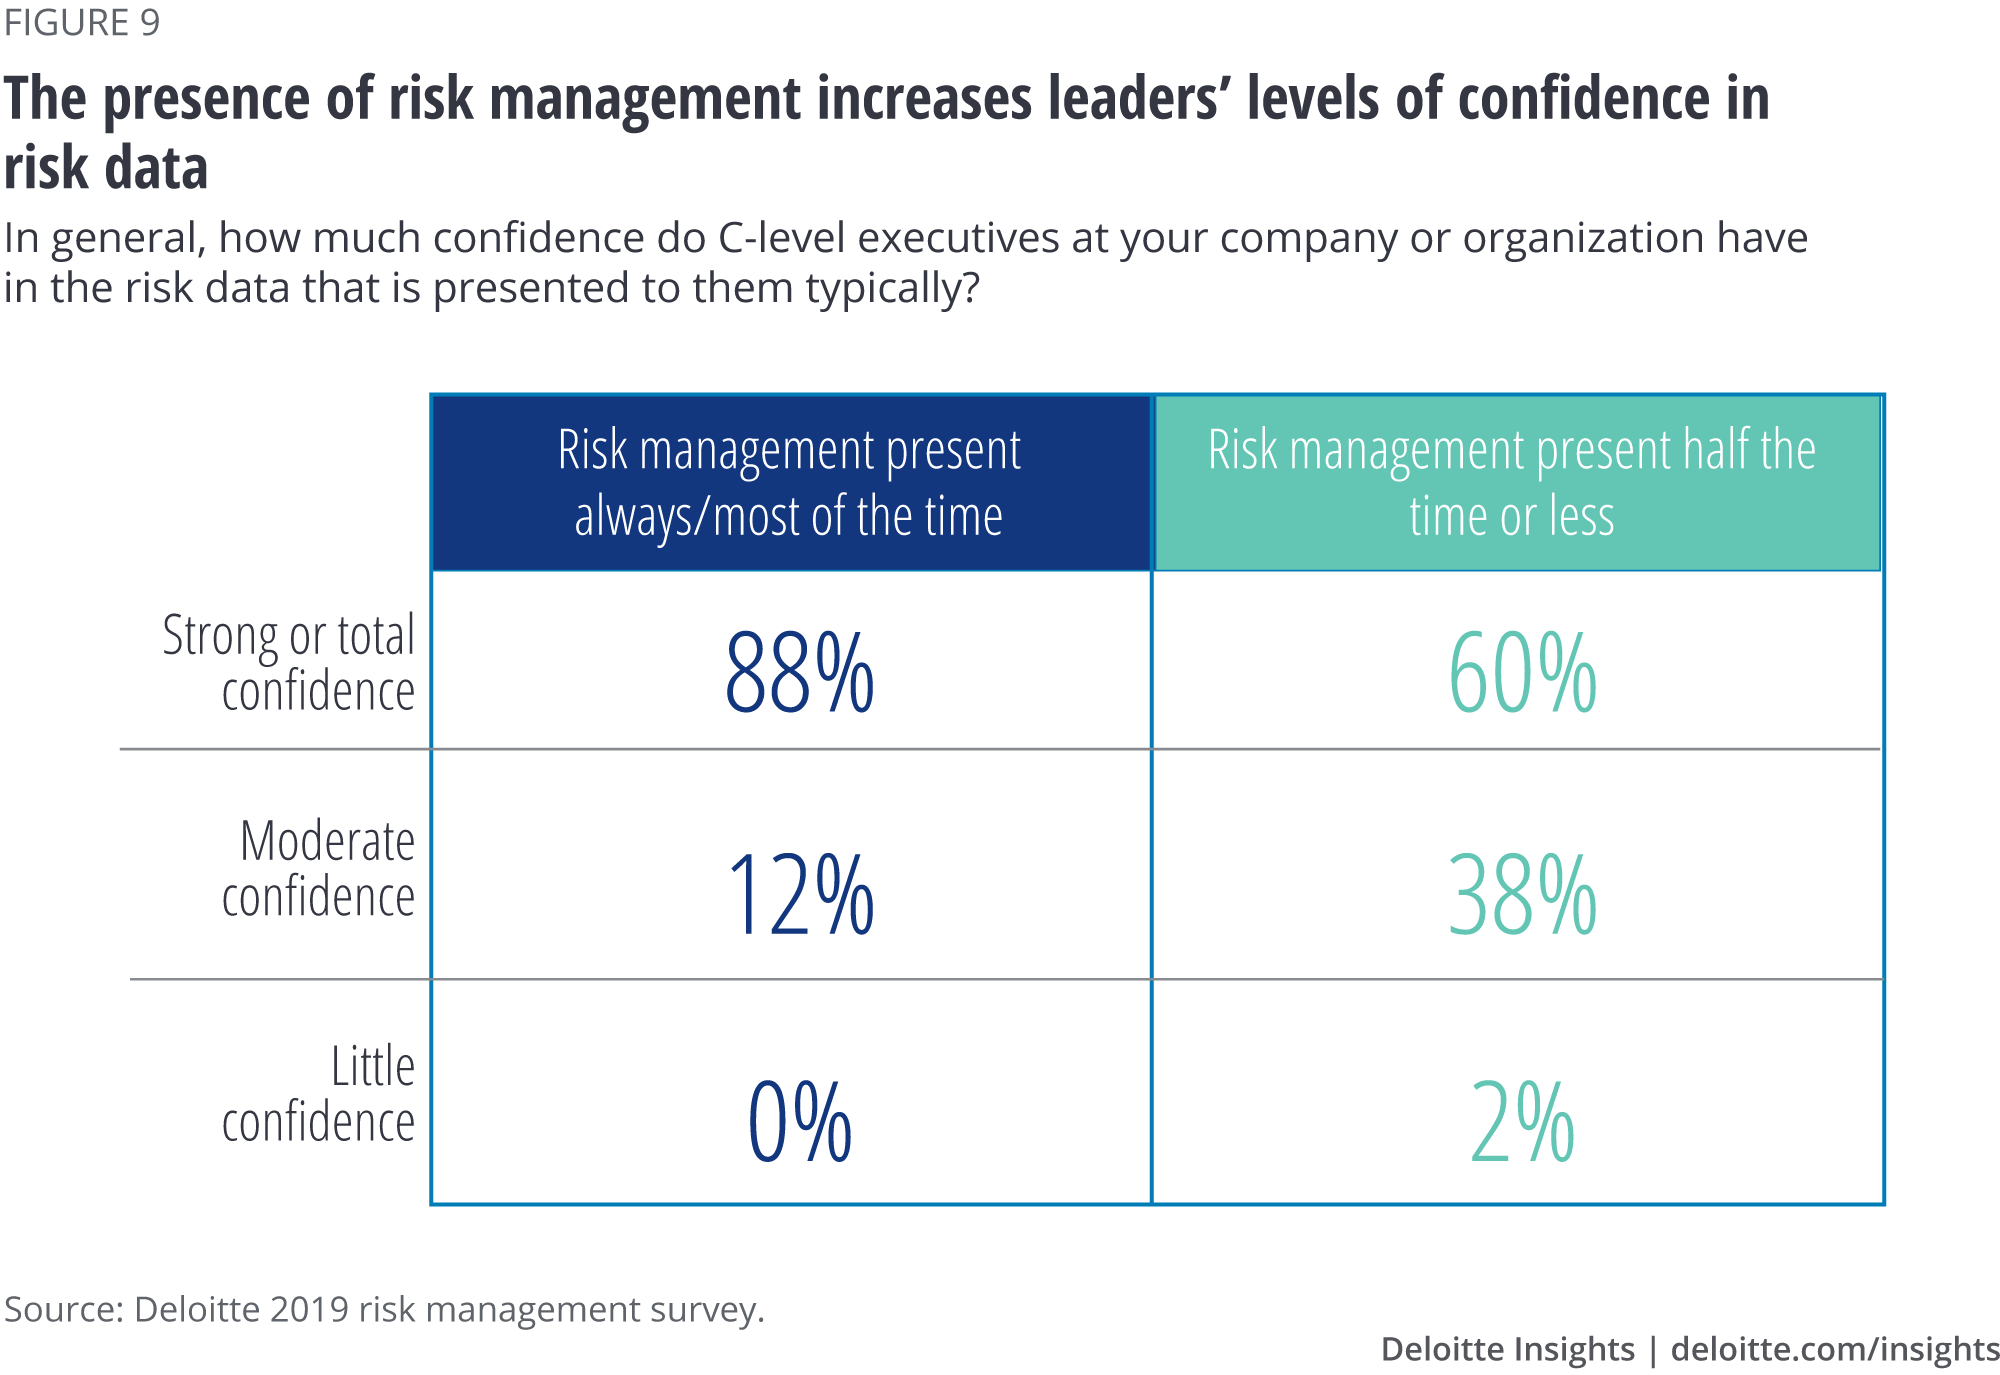 The presence of risk management increases leaders' levels of confidence in risk data